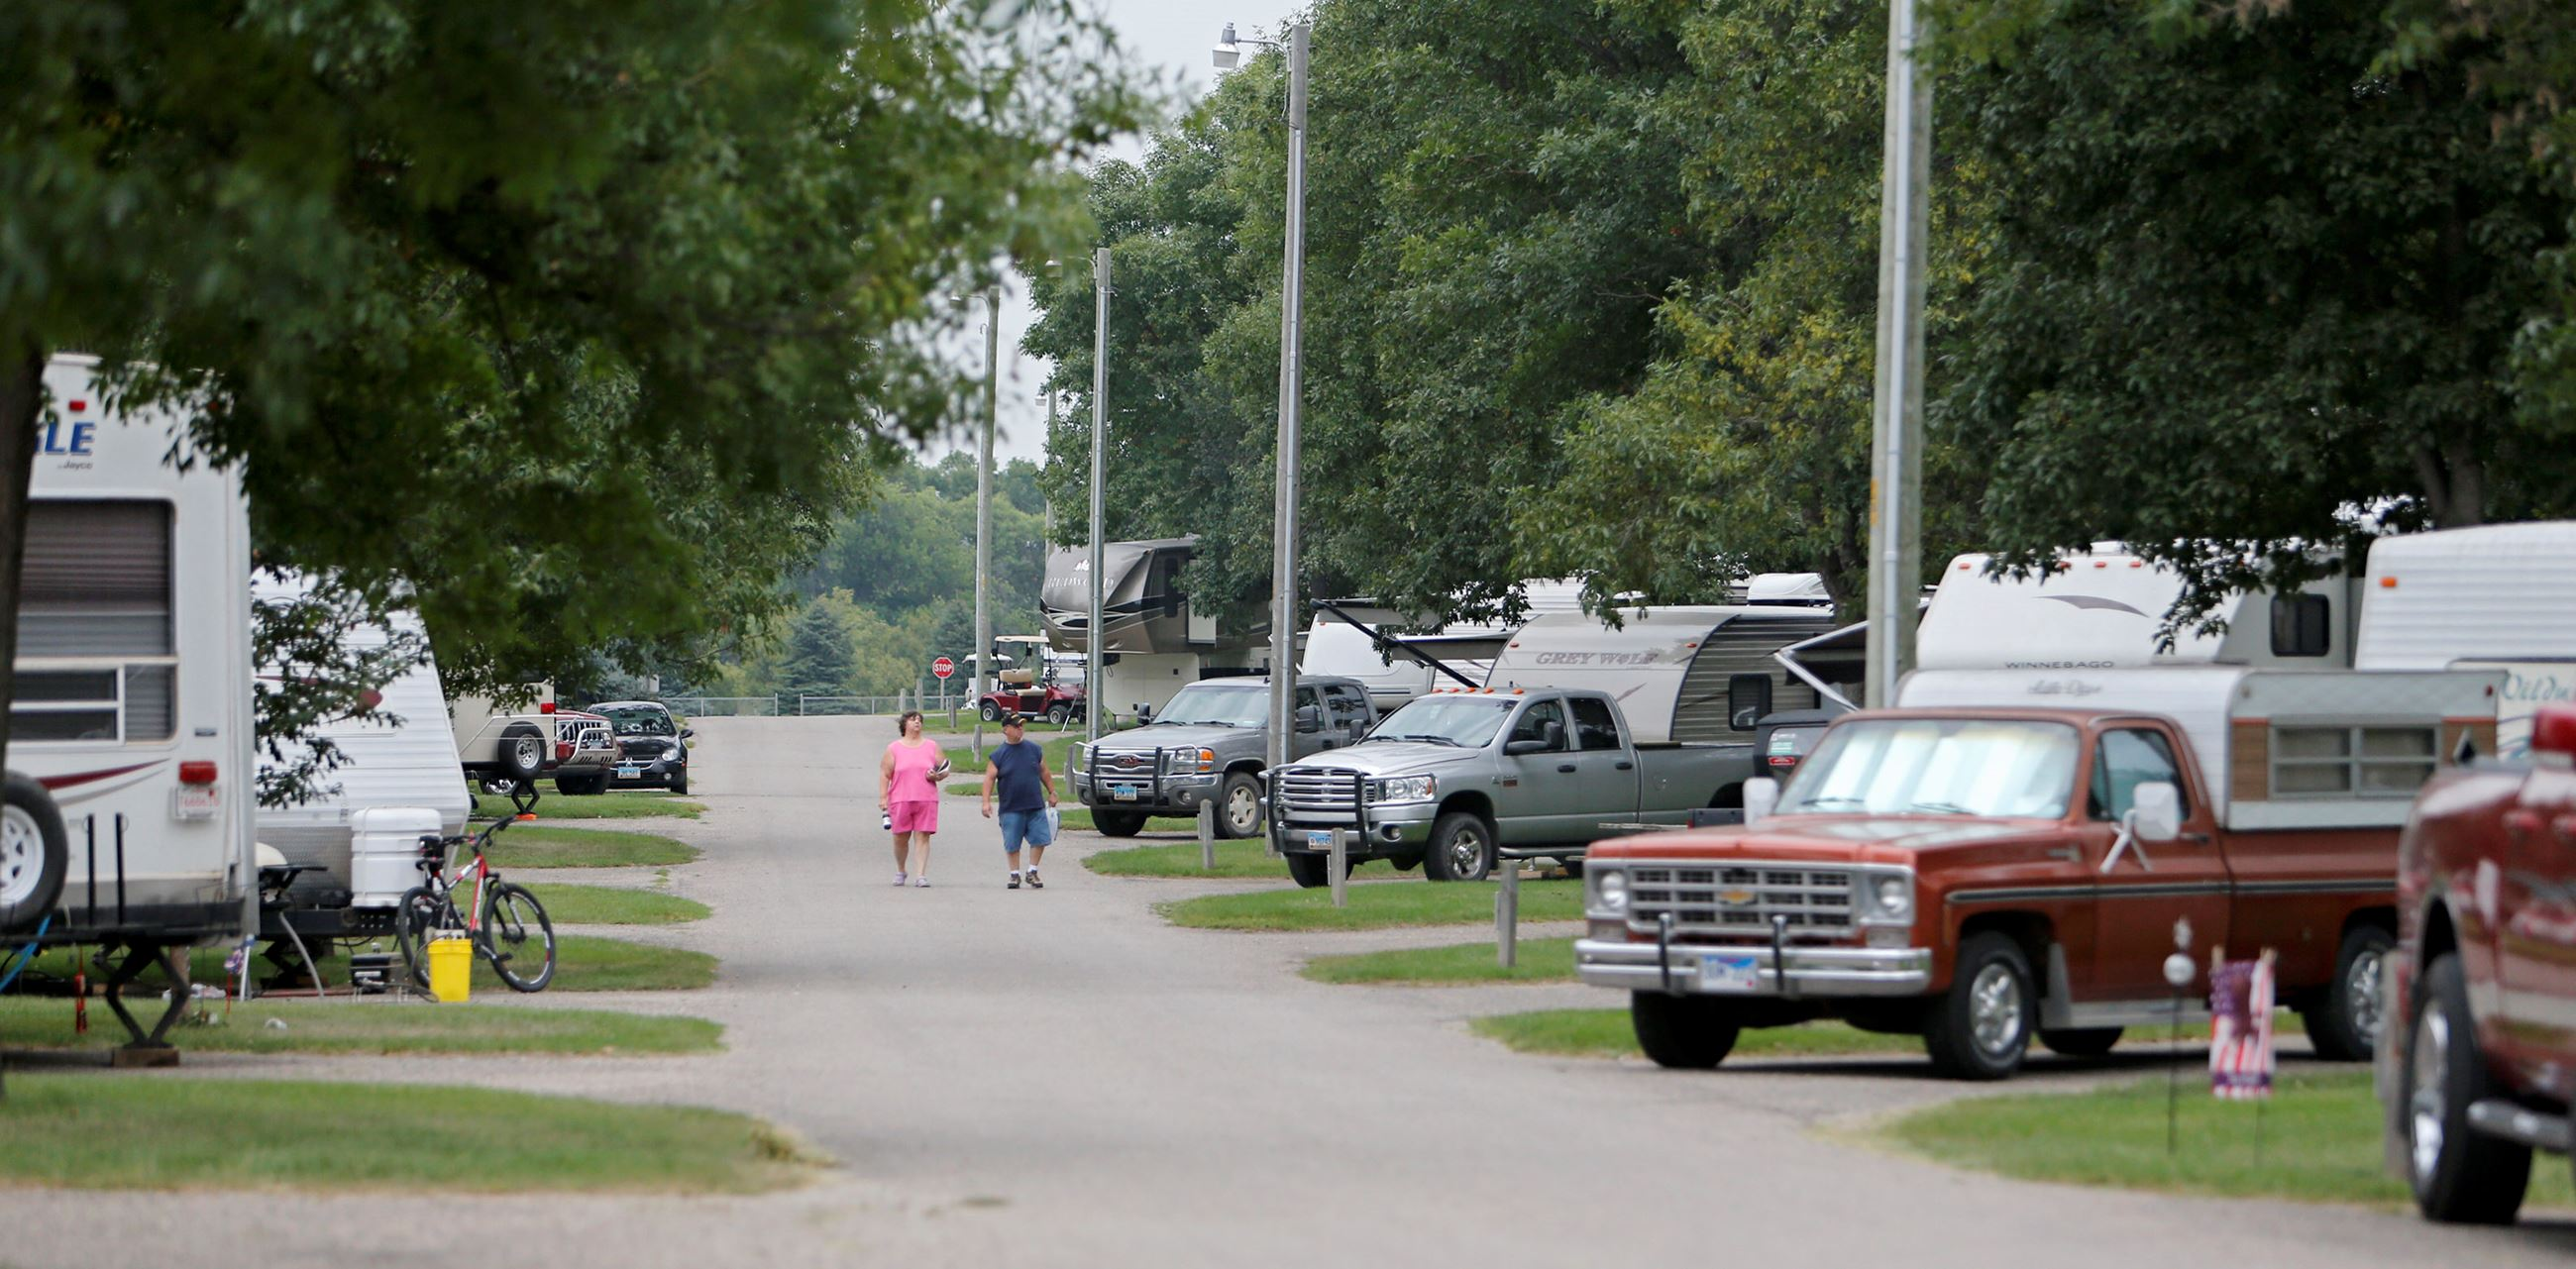 Wylie Park Campground road with campers parked on both sides